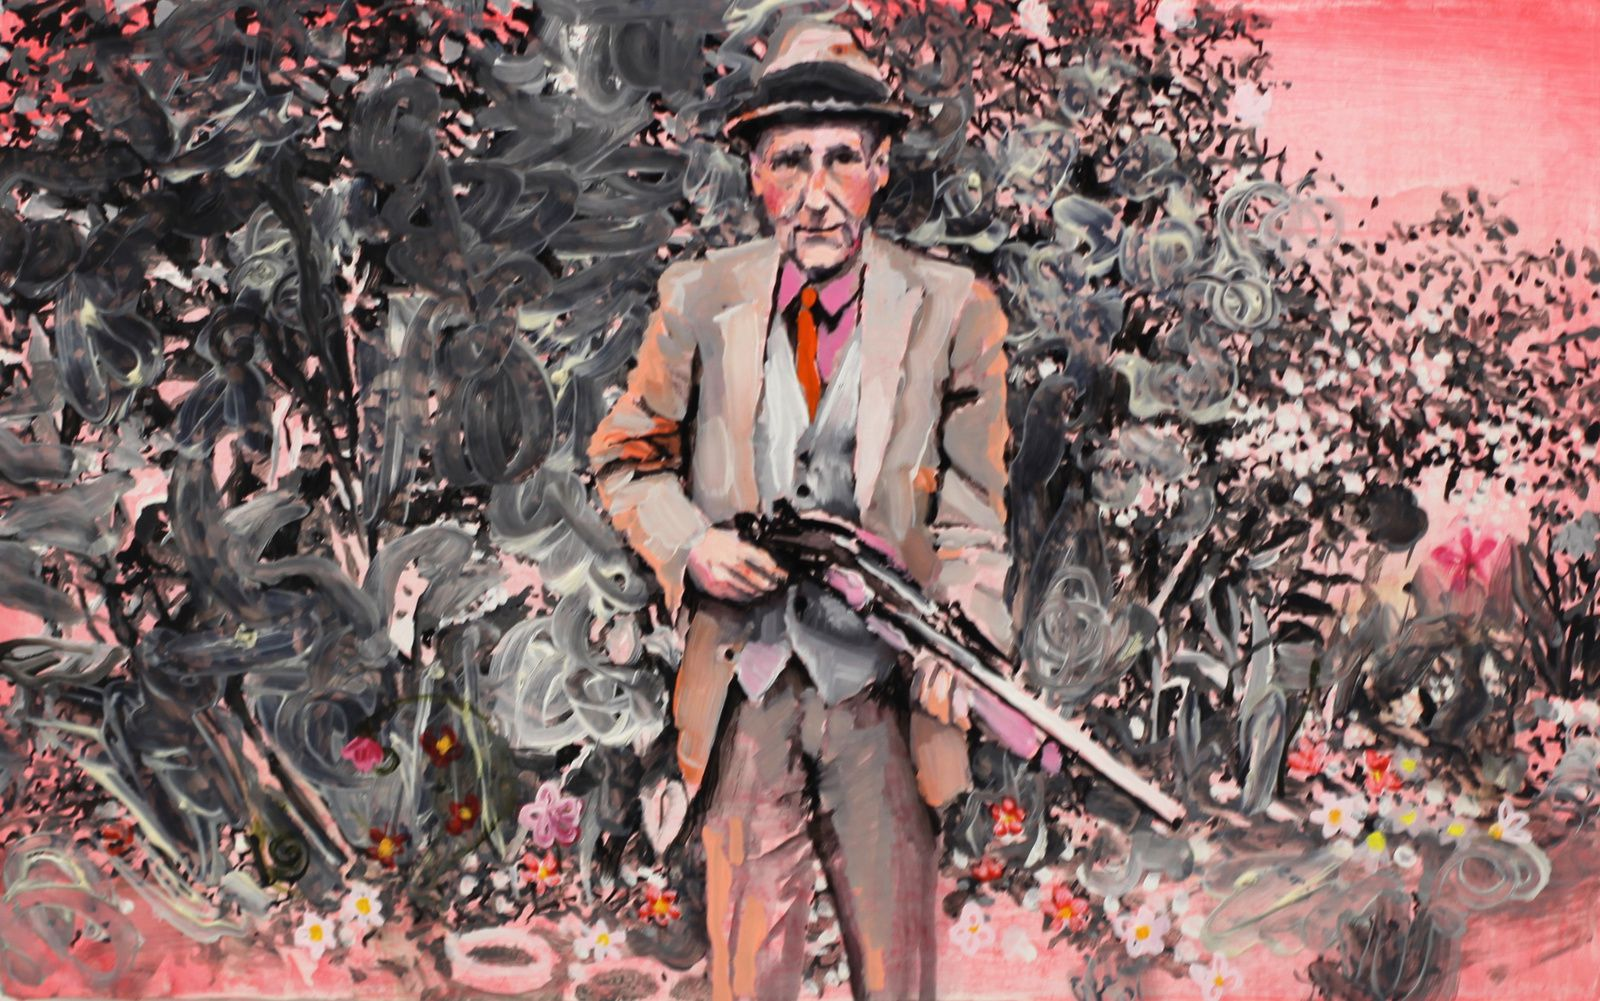 """Wiliam S. Burroughs in pink with his favorite gun"", 2016 d'Ida Tursic et Wilfried Mille - Courtesy Galerie Almine RECH © Photo Éric Simon"